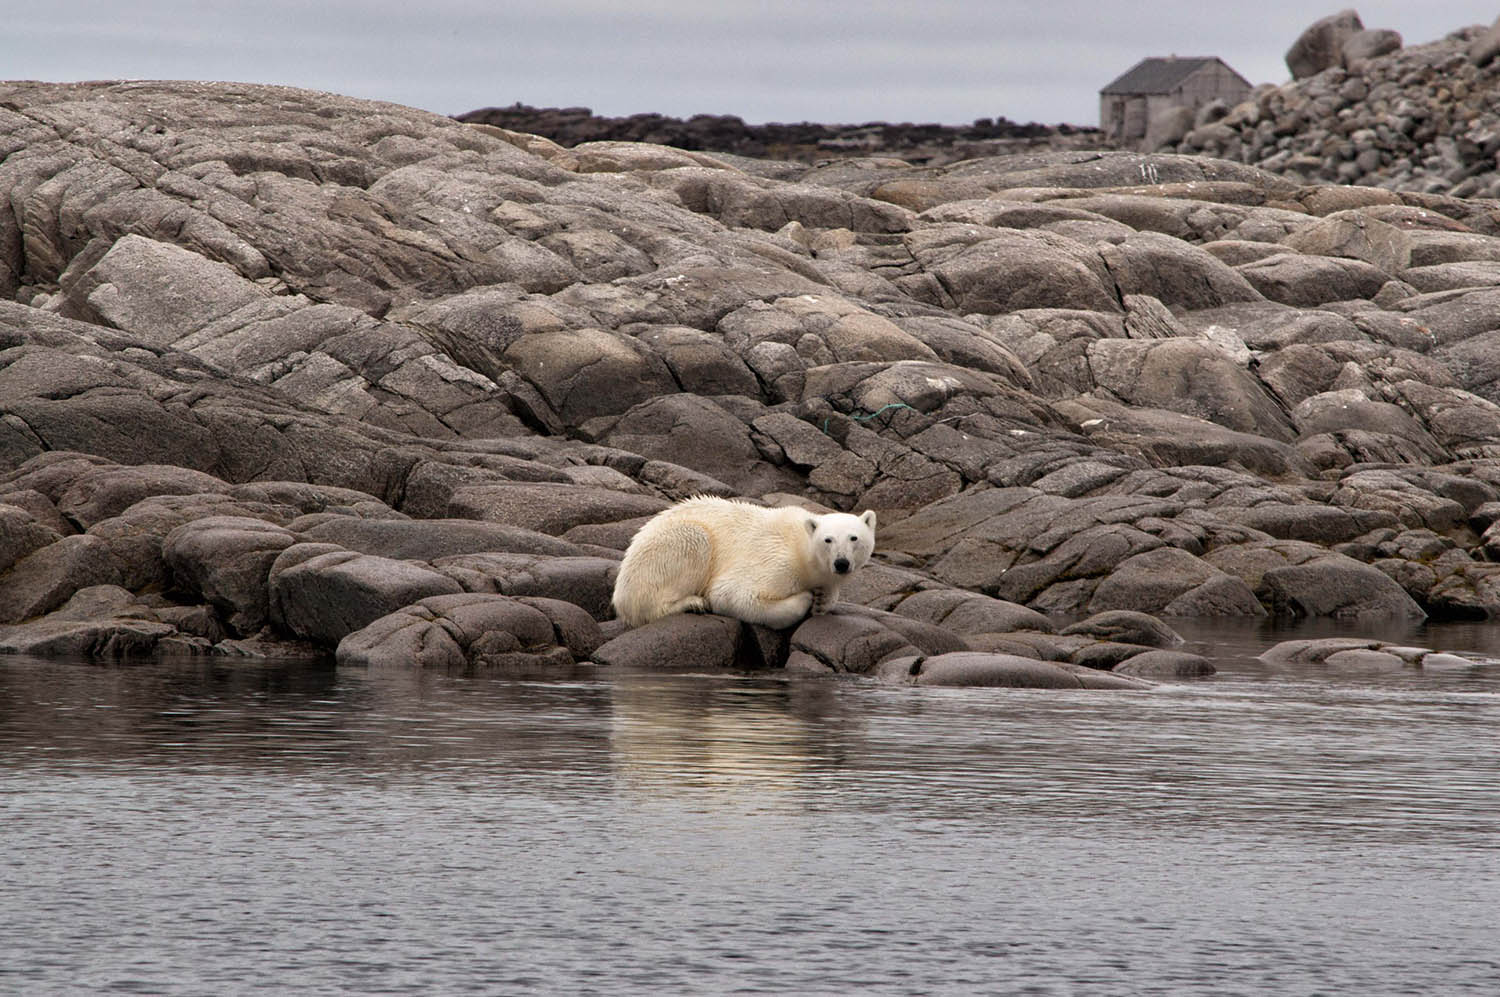 White bear in Spitsbergen